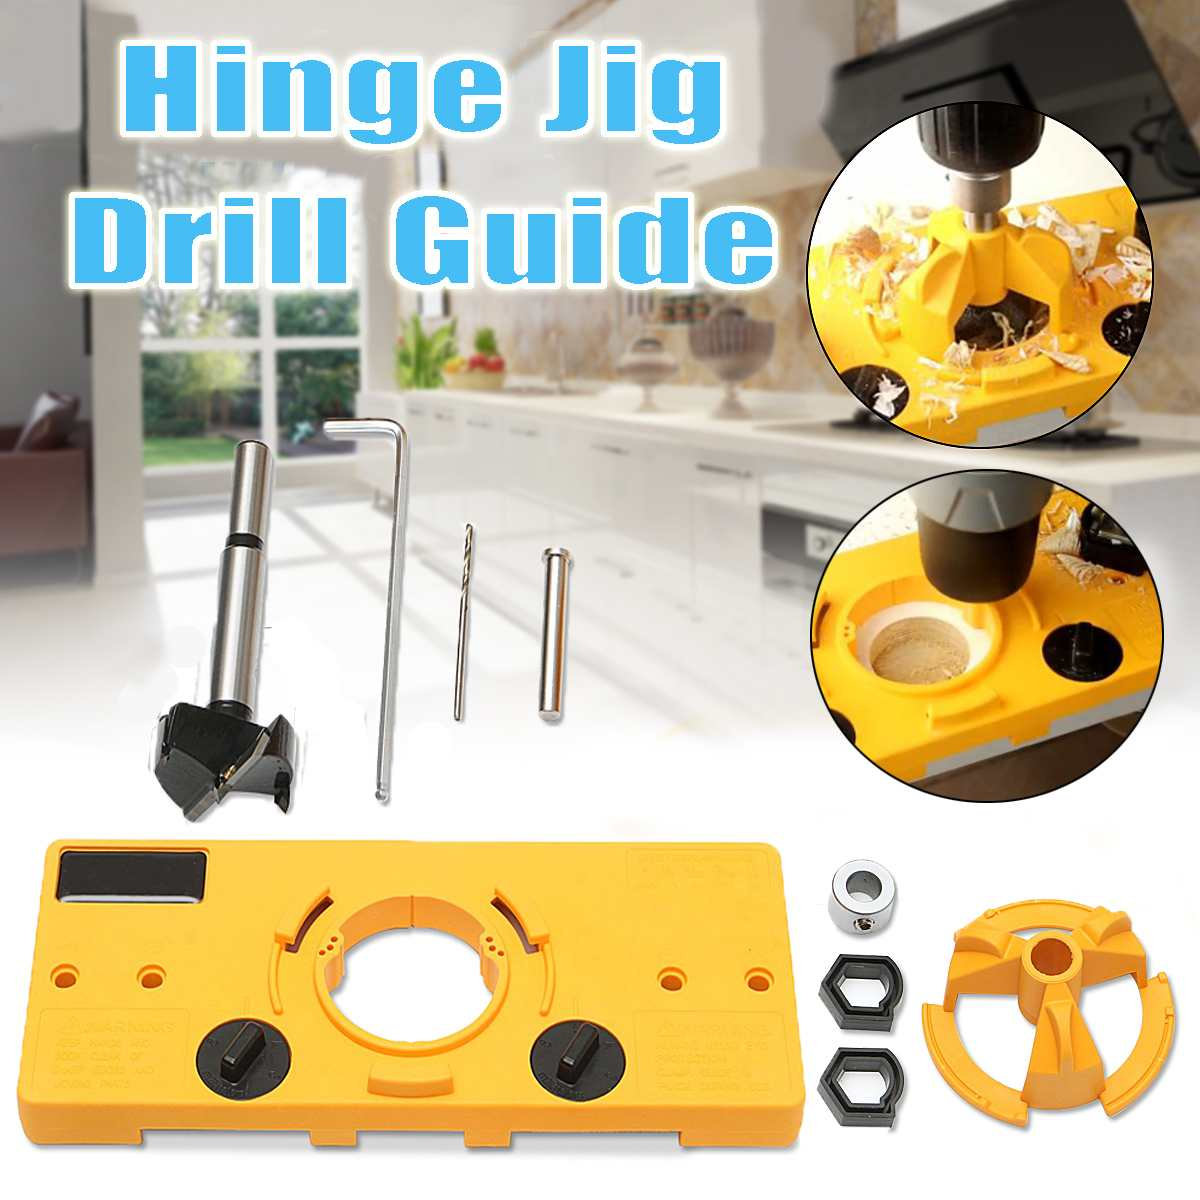 New 35mm Cup Style Hinge Drilling Guide Woodworking Hole Locator Jig Drill Guide Cabinet Door Installation For Carpenter ToolsNew 35mm Cup Style Hinge Drilling Guide Woodworking Hole Locator Jig Drill Guide Cabinet Door Installation For Carpenter Tools